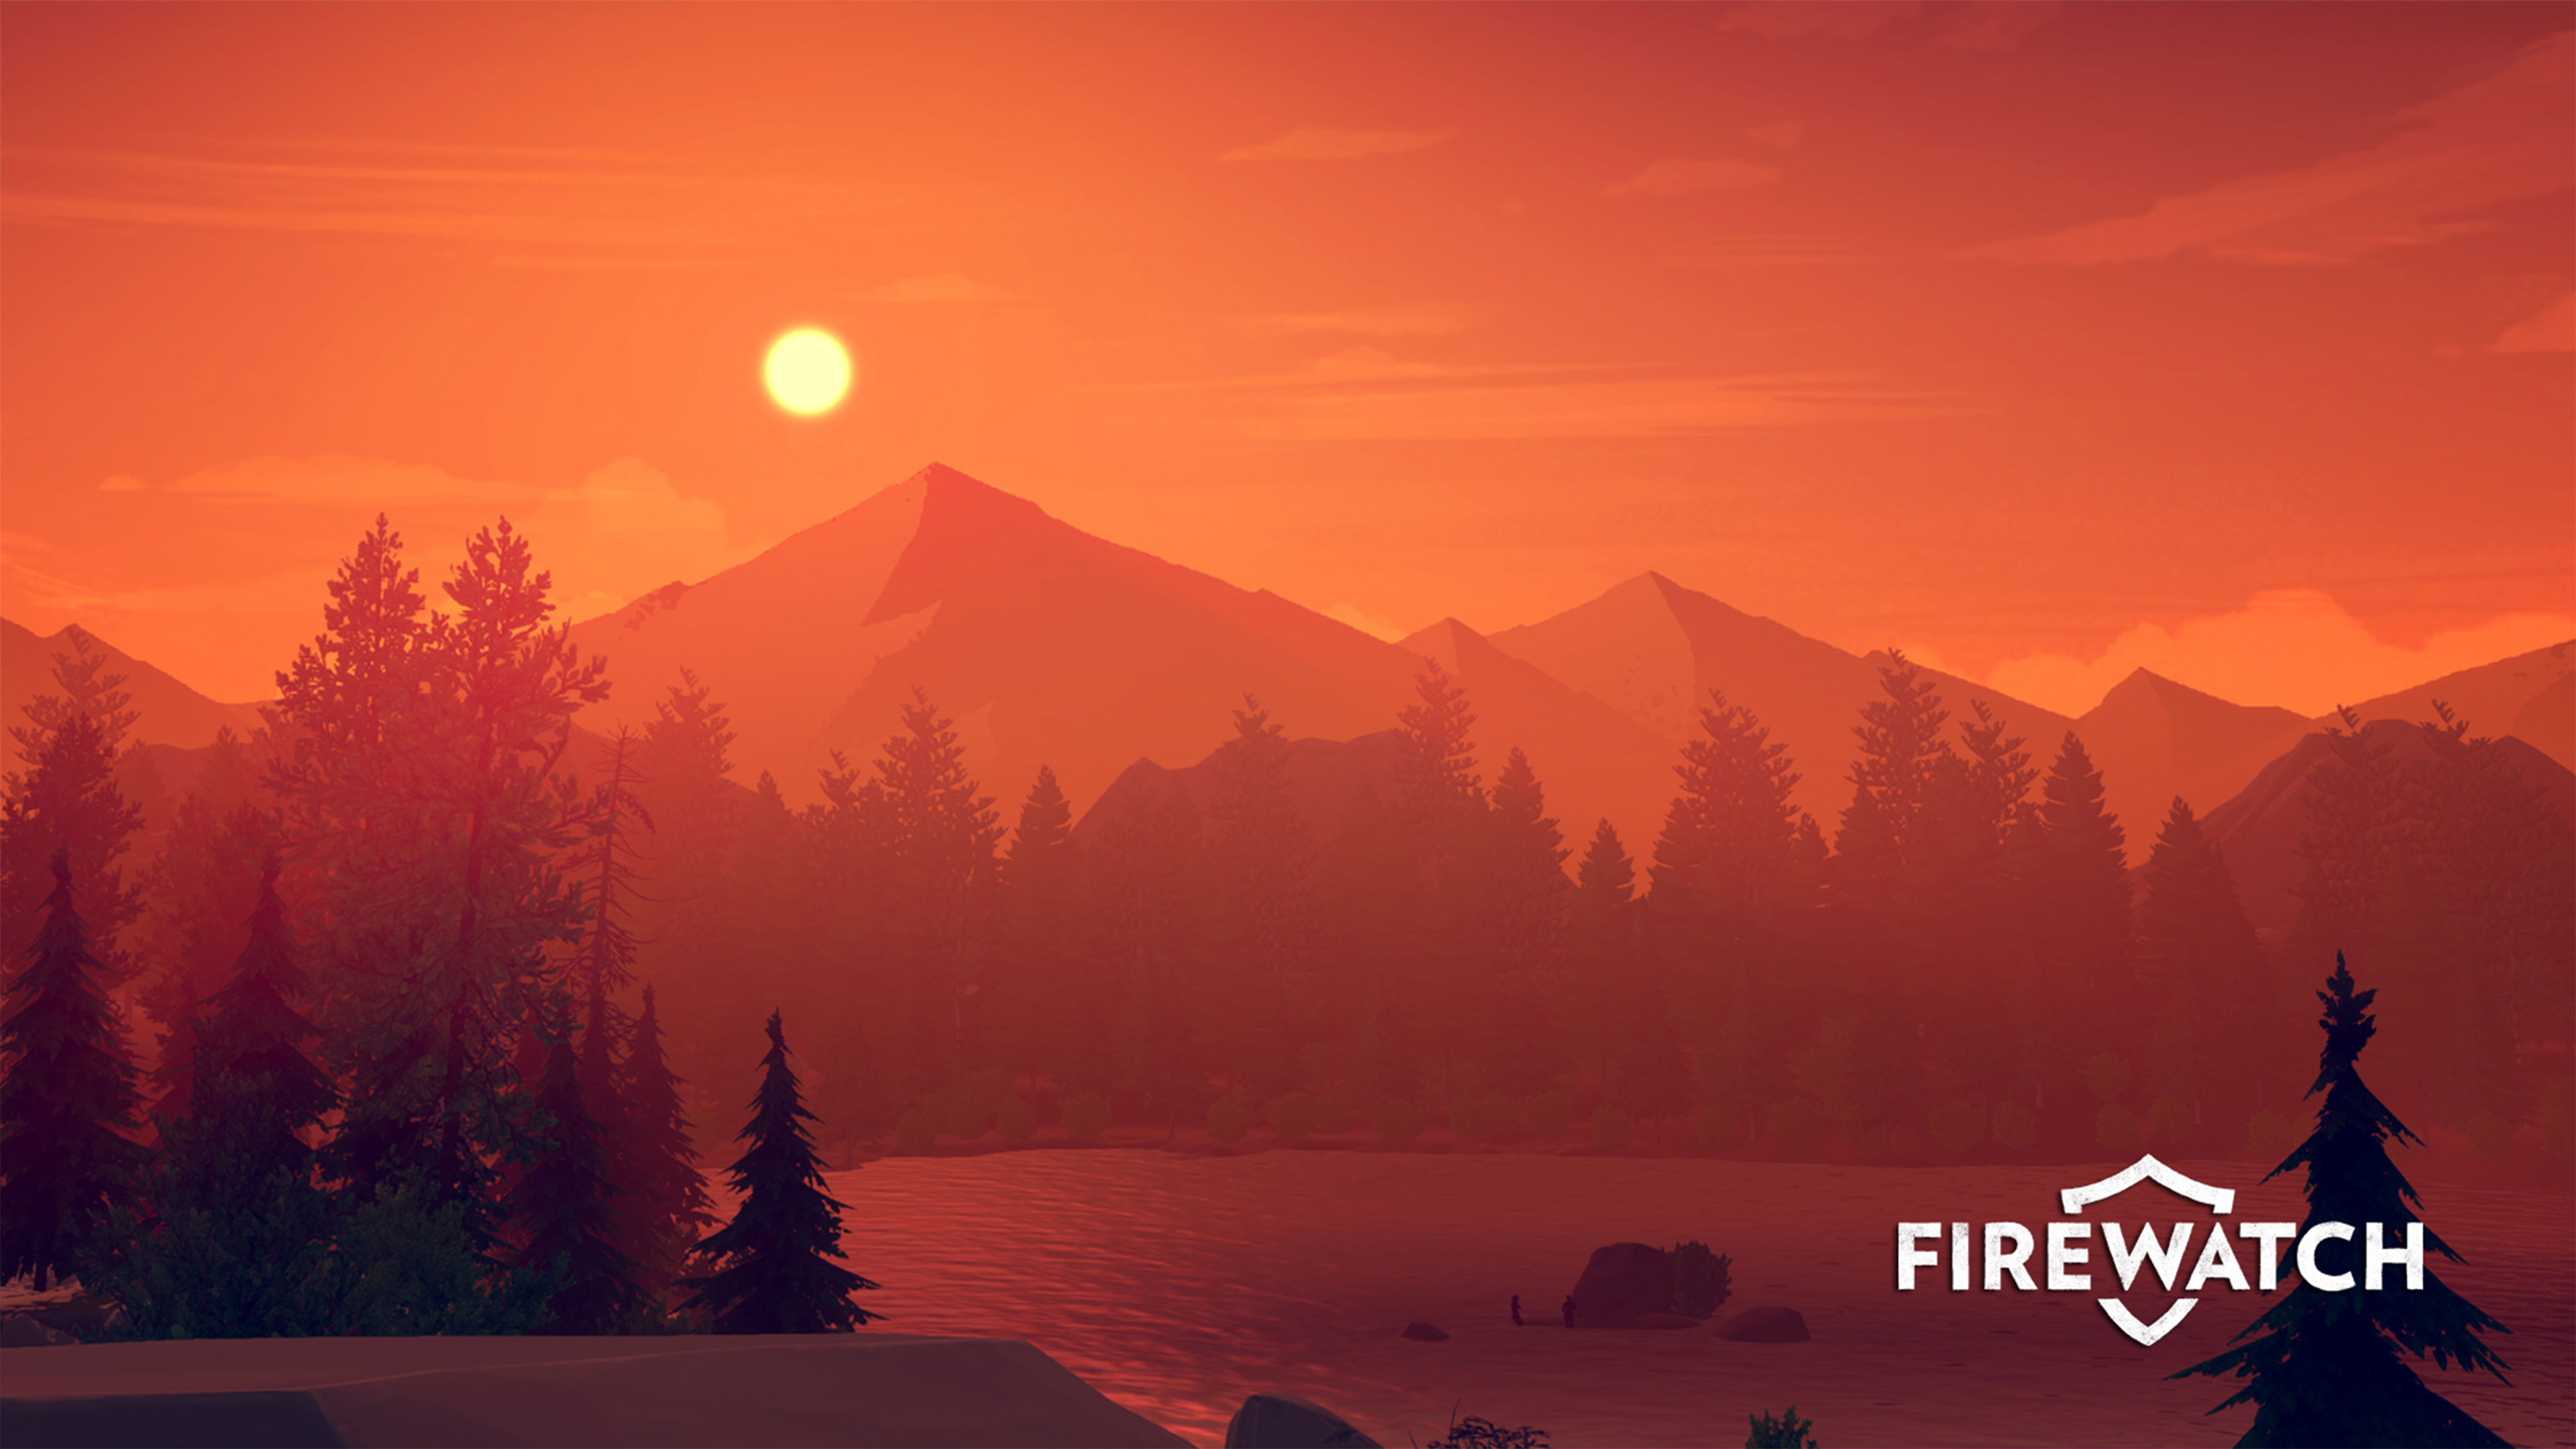 Firewatch Wallpapers In Ultra HD